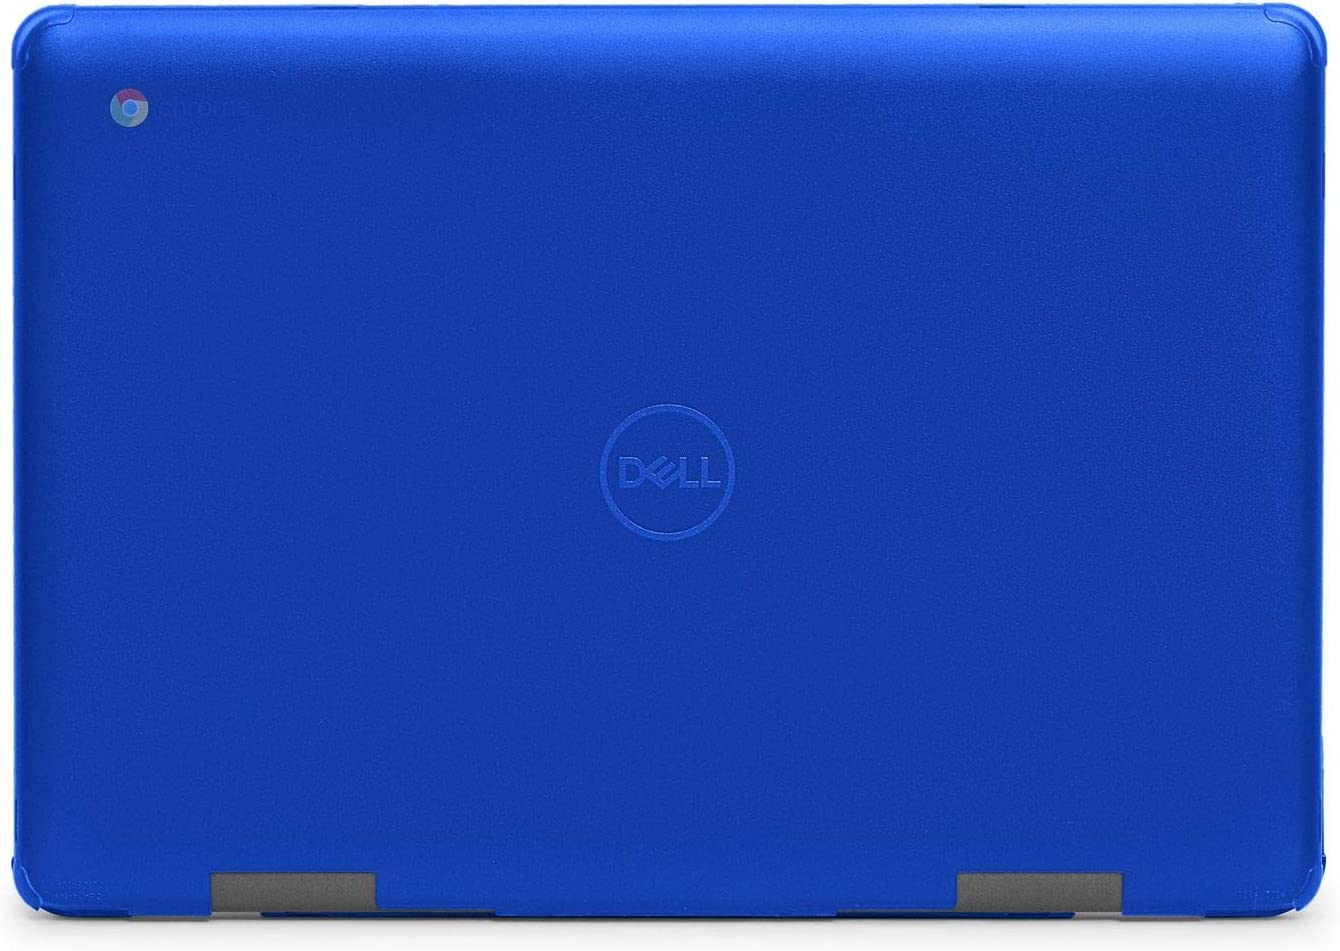 mCover Hard Shell Case for 2020 14-inch Dell Latitude 5400 Chromebook Enterprise Laptop Computer (NOT Compatible with Dell C11 3181/3100/7486 2in1, 3400/3120/3180/3189/5190 Series) Dell LC5400 Blue